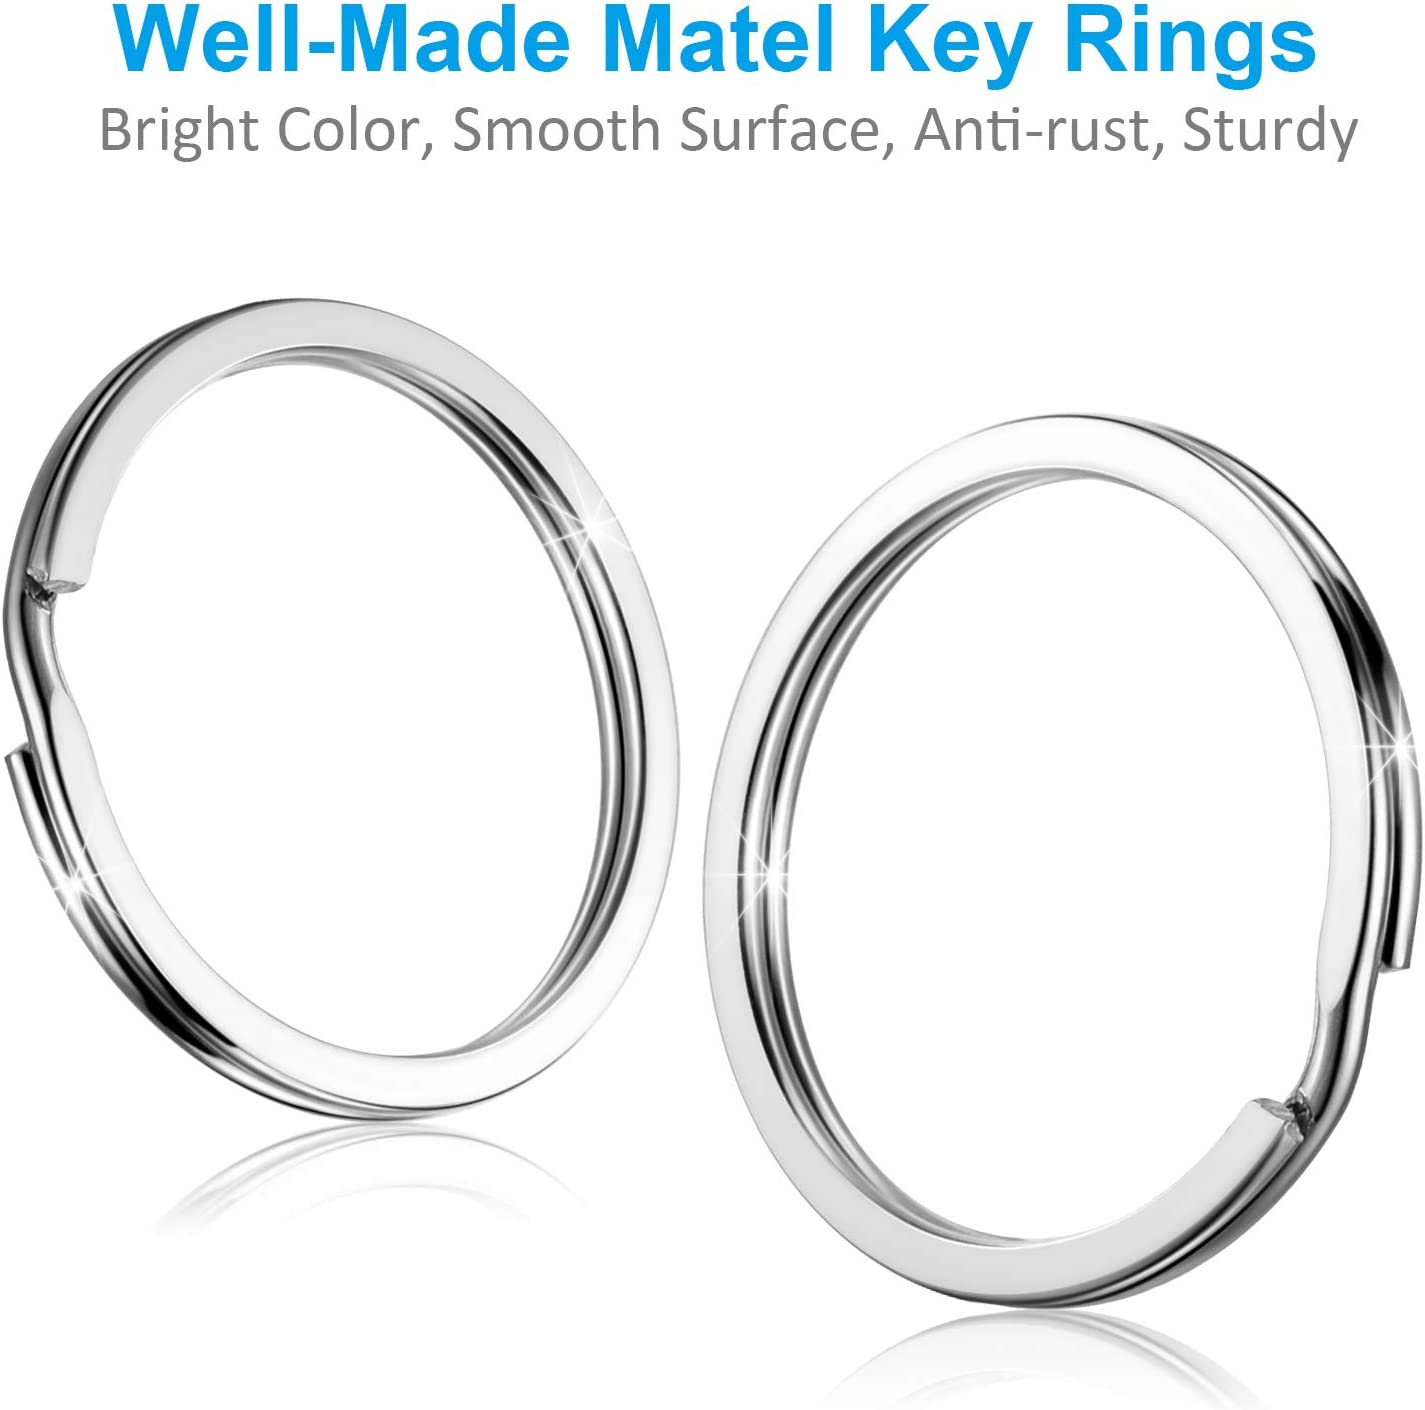 for Dog Pet Collar DIY Tag Jewelry Car Key Small 1//2 inch, 3//4 inch,1 inch, 1.25 inch YHYZ Split Key Ring Circle Assorted Metal Round Keyring Durable in 4 Sizes Sliver Size 1, 20pcs